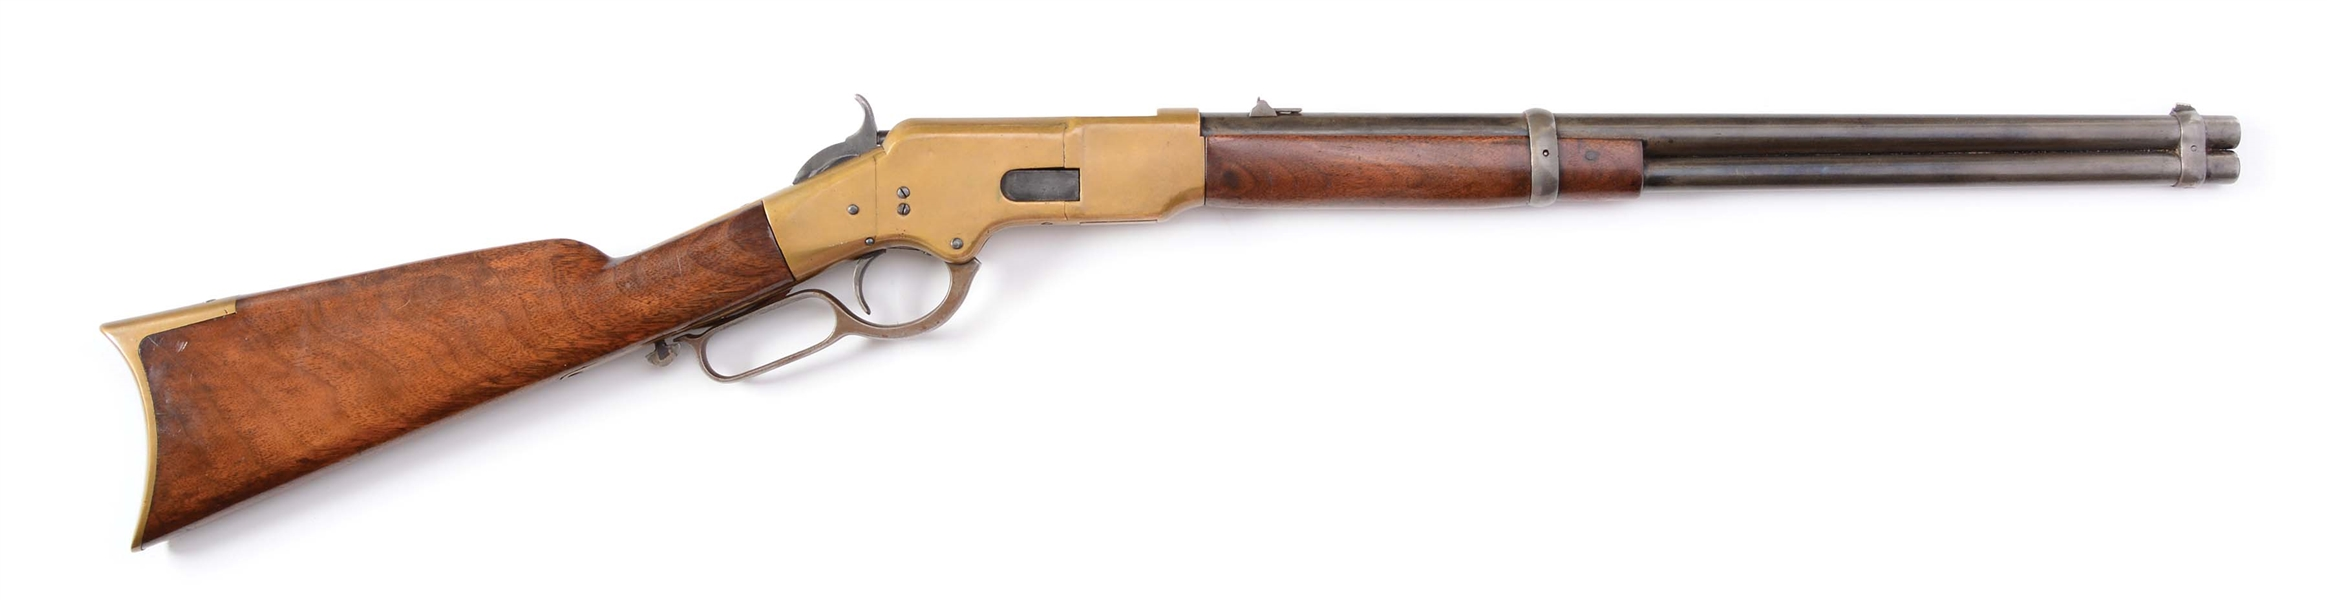 (A) RARE 1ST MODEL FLATSIDE 1866 SADDLE RING CARBINE (1866).